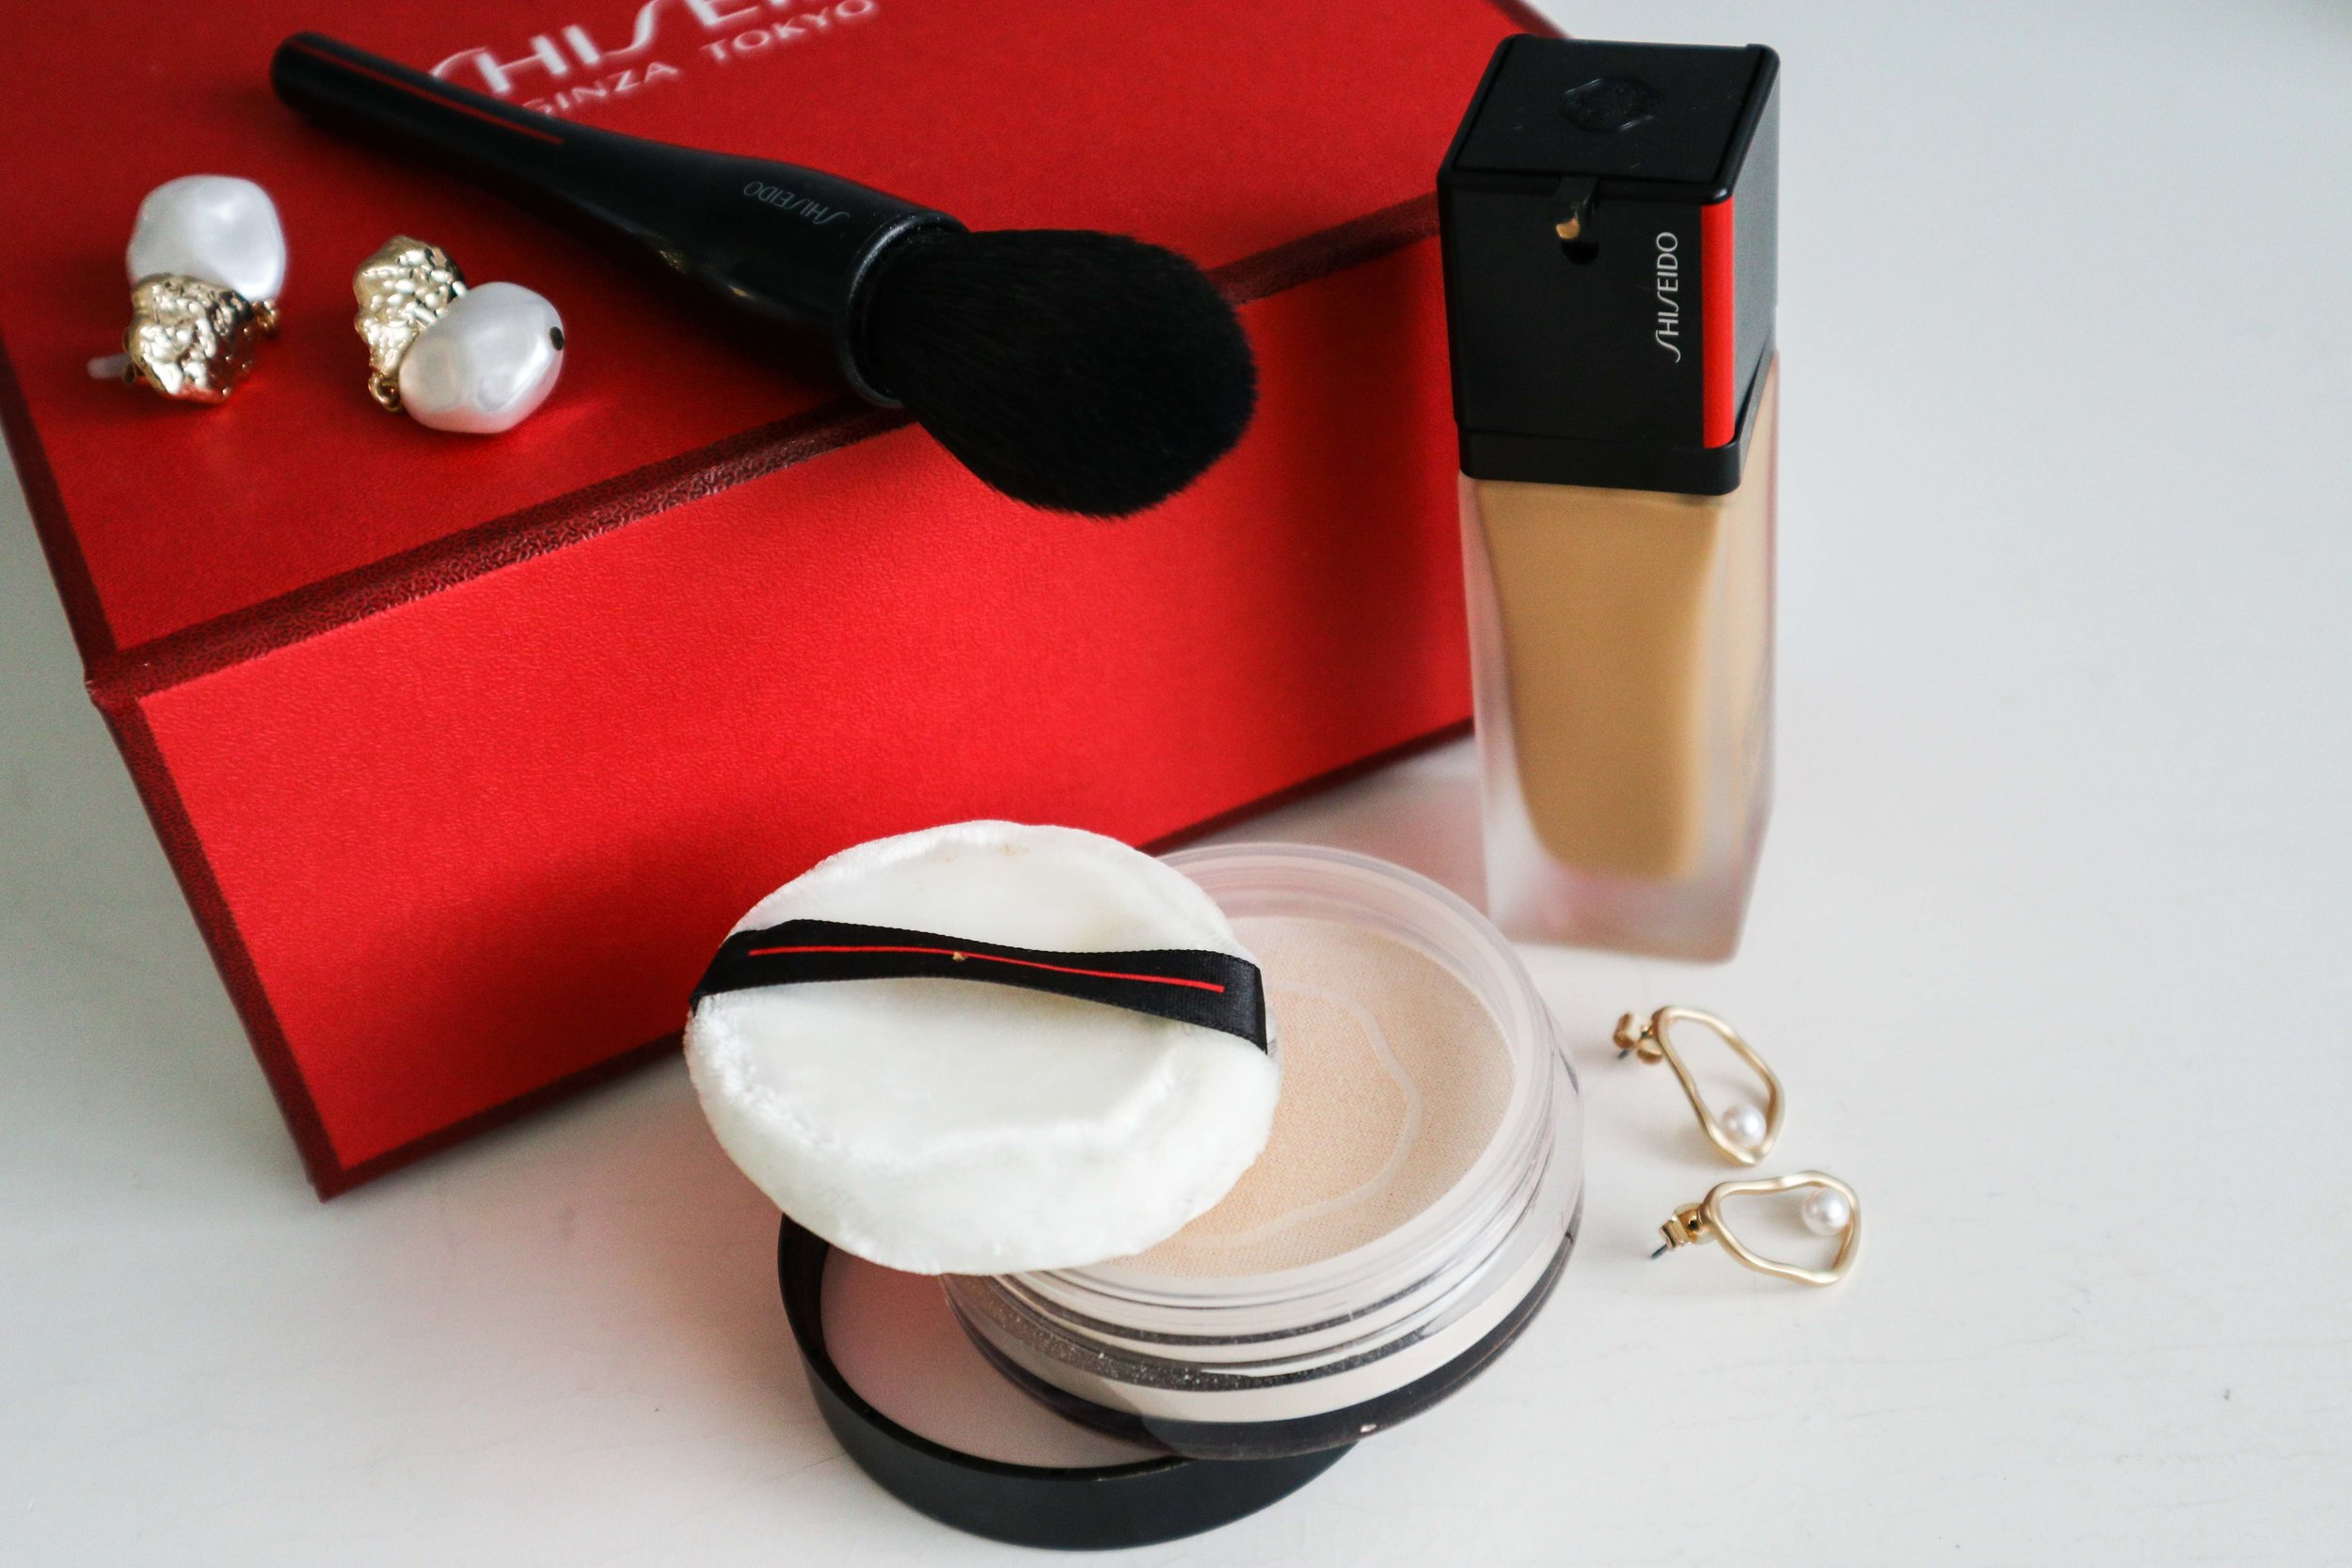 We Put The Shiseido S New Self Refreshing Foundation To The Test Is It Good Project Vanity